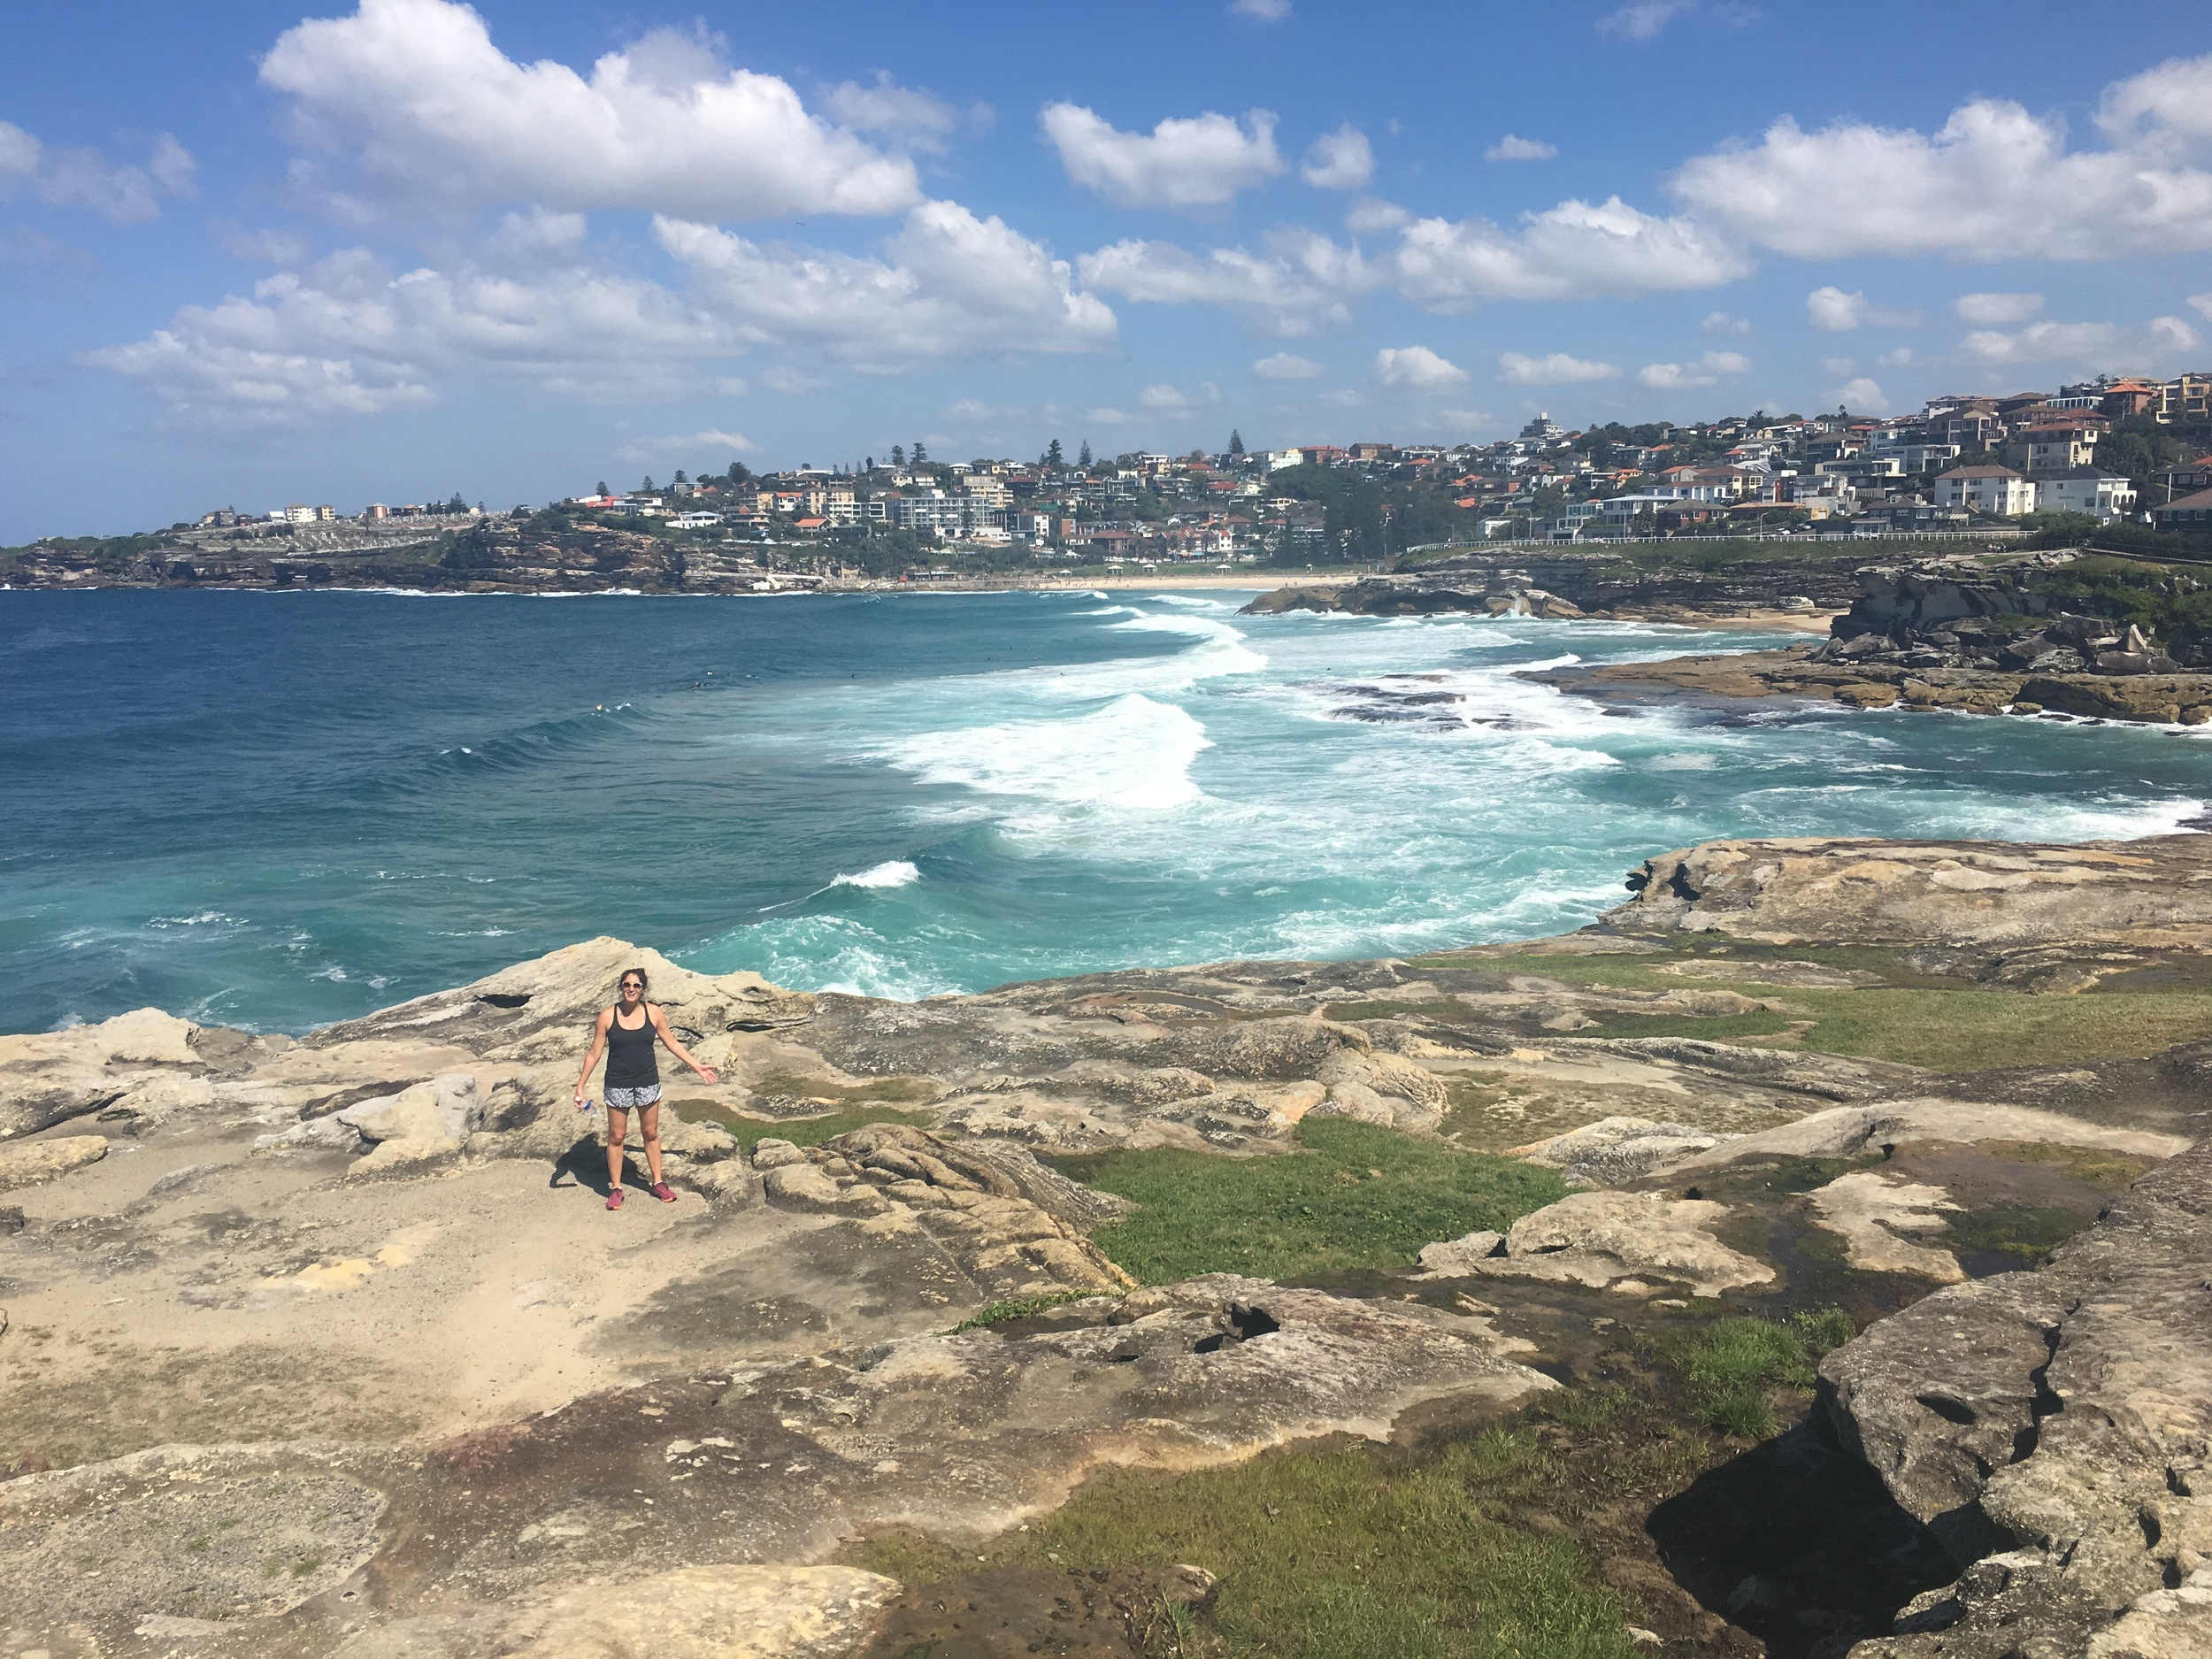 To Coogee